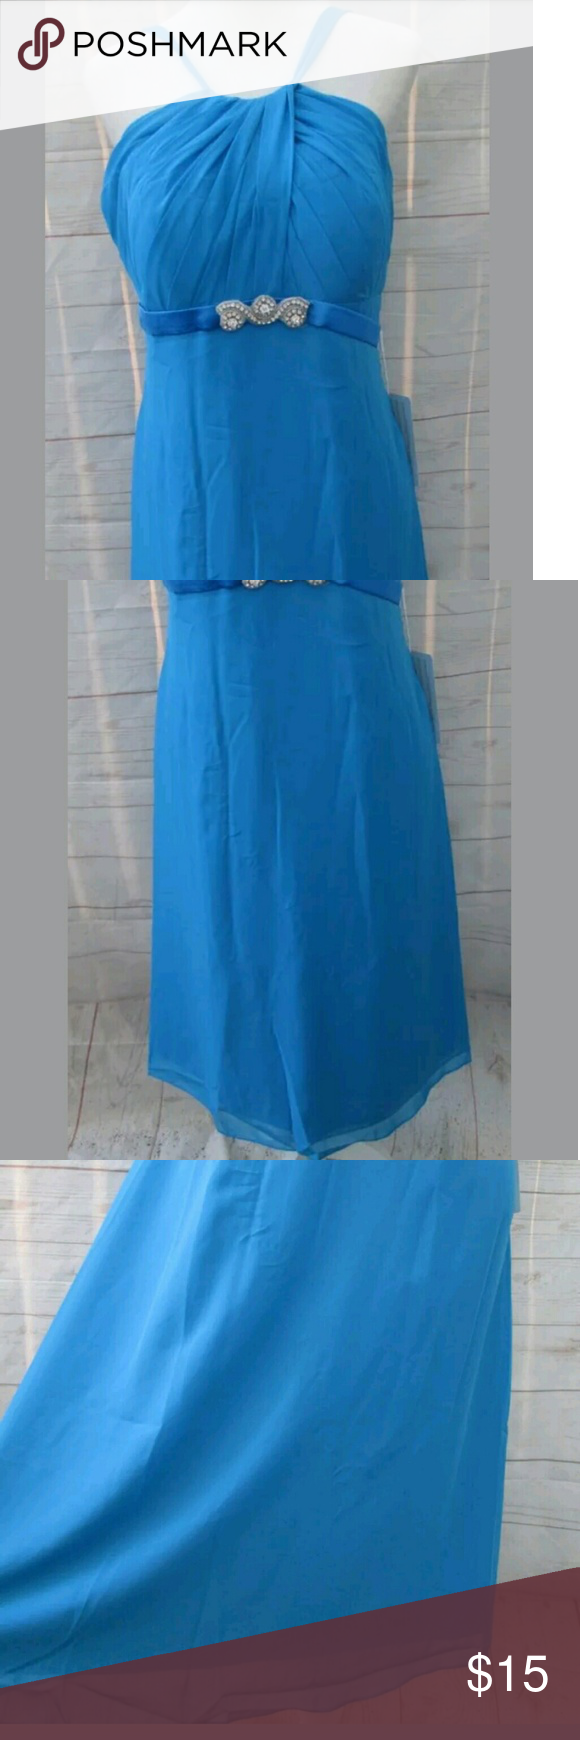 Teal blue formal bridesmaid dress new boutique